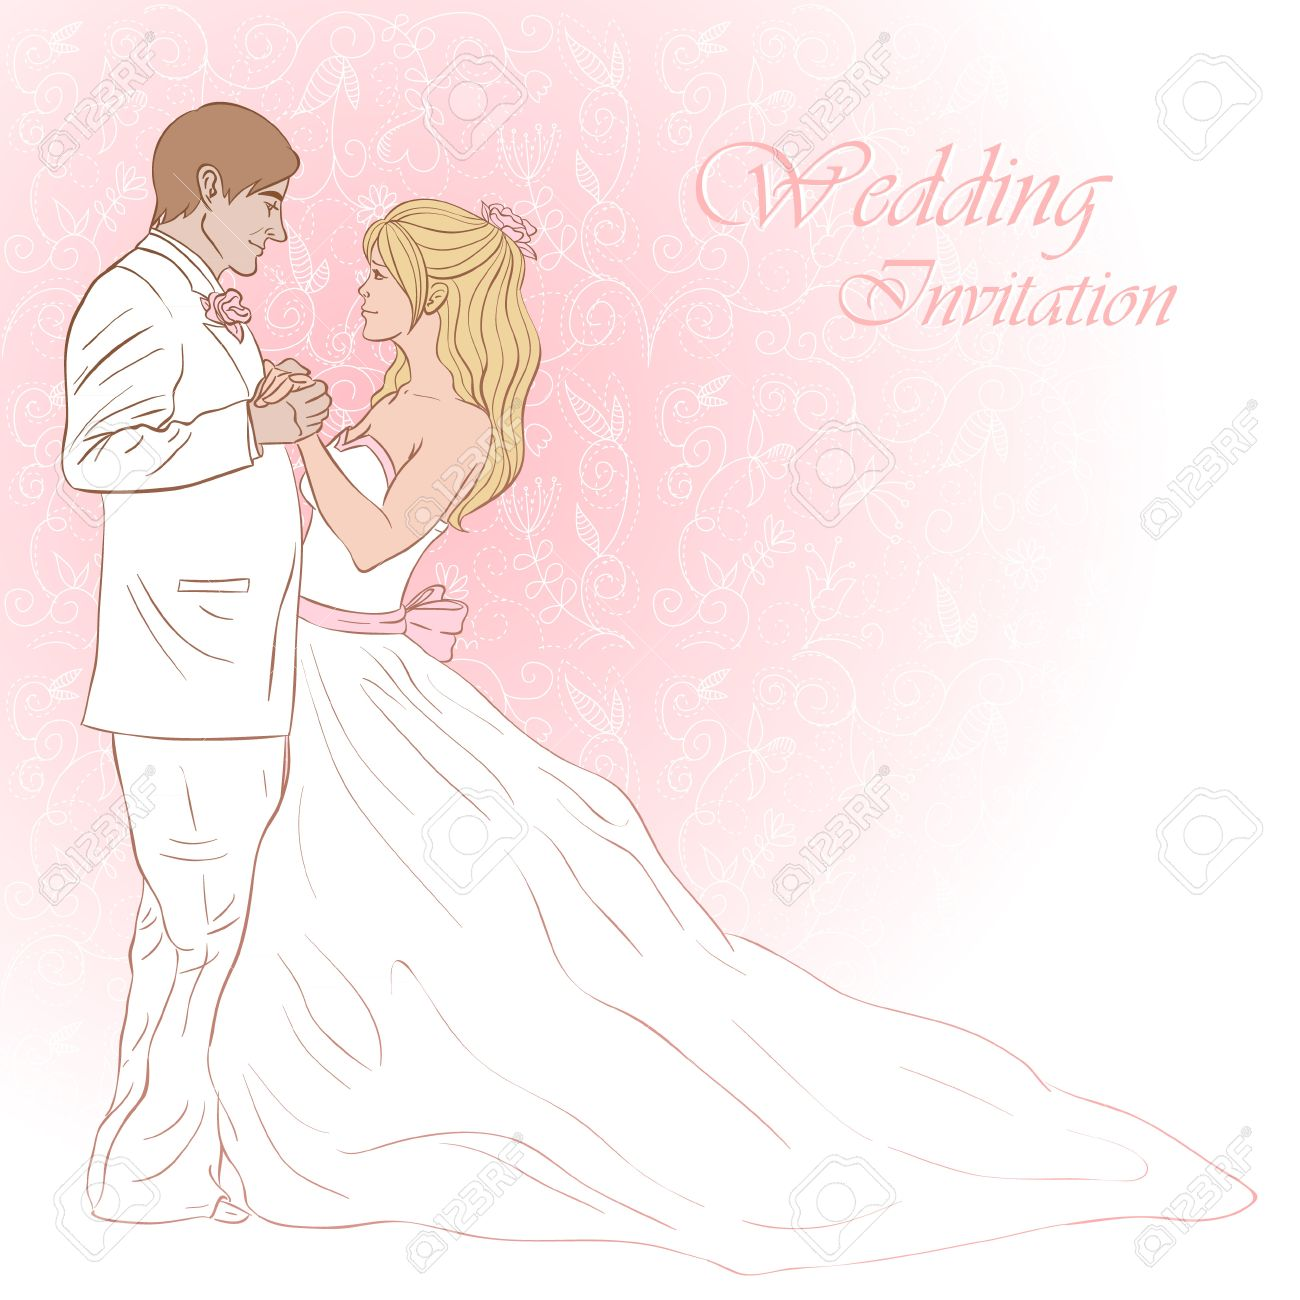 Bride And Groom Wedding Invitation Card On A Lovely Floral